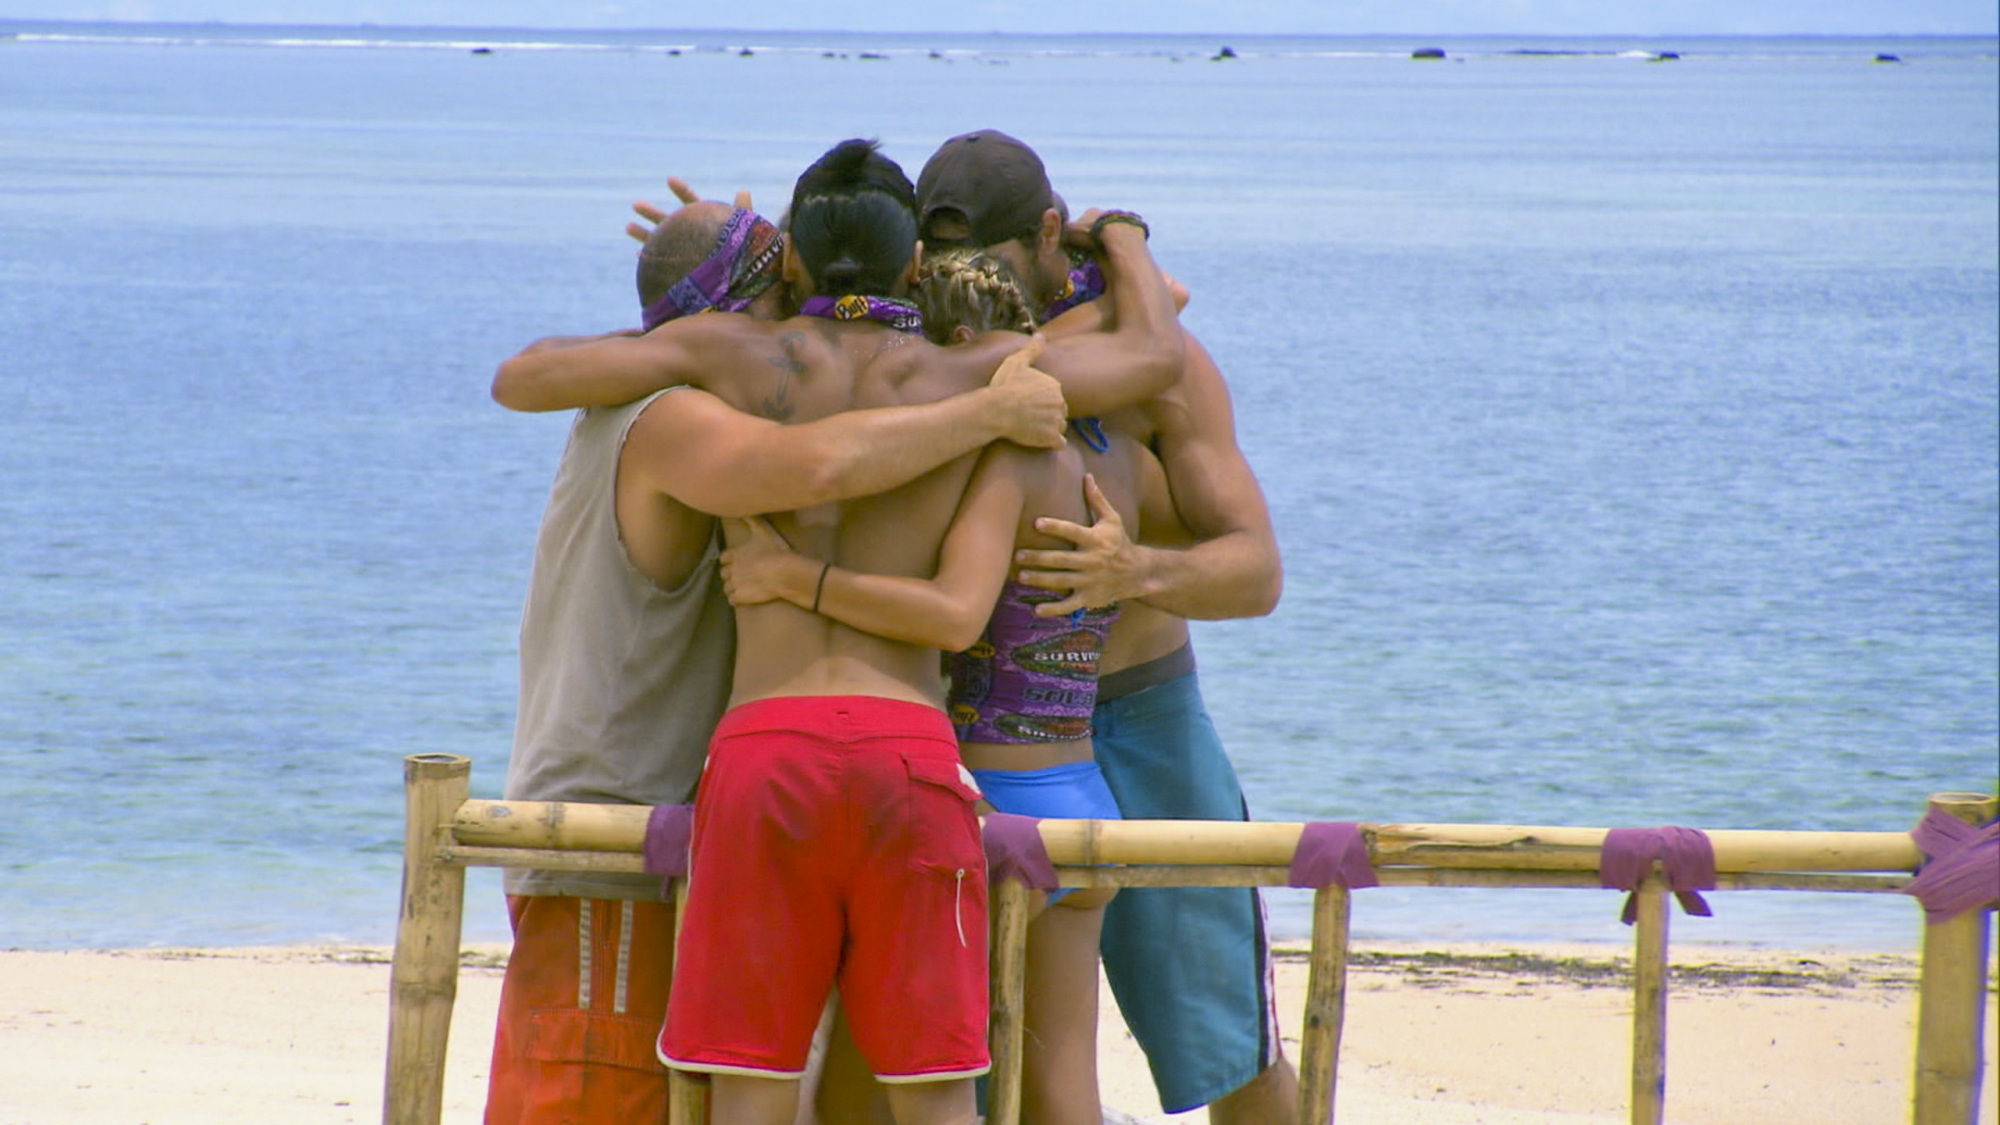 Solana Tribe in Season 28 Episode 5